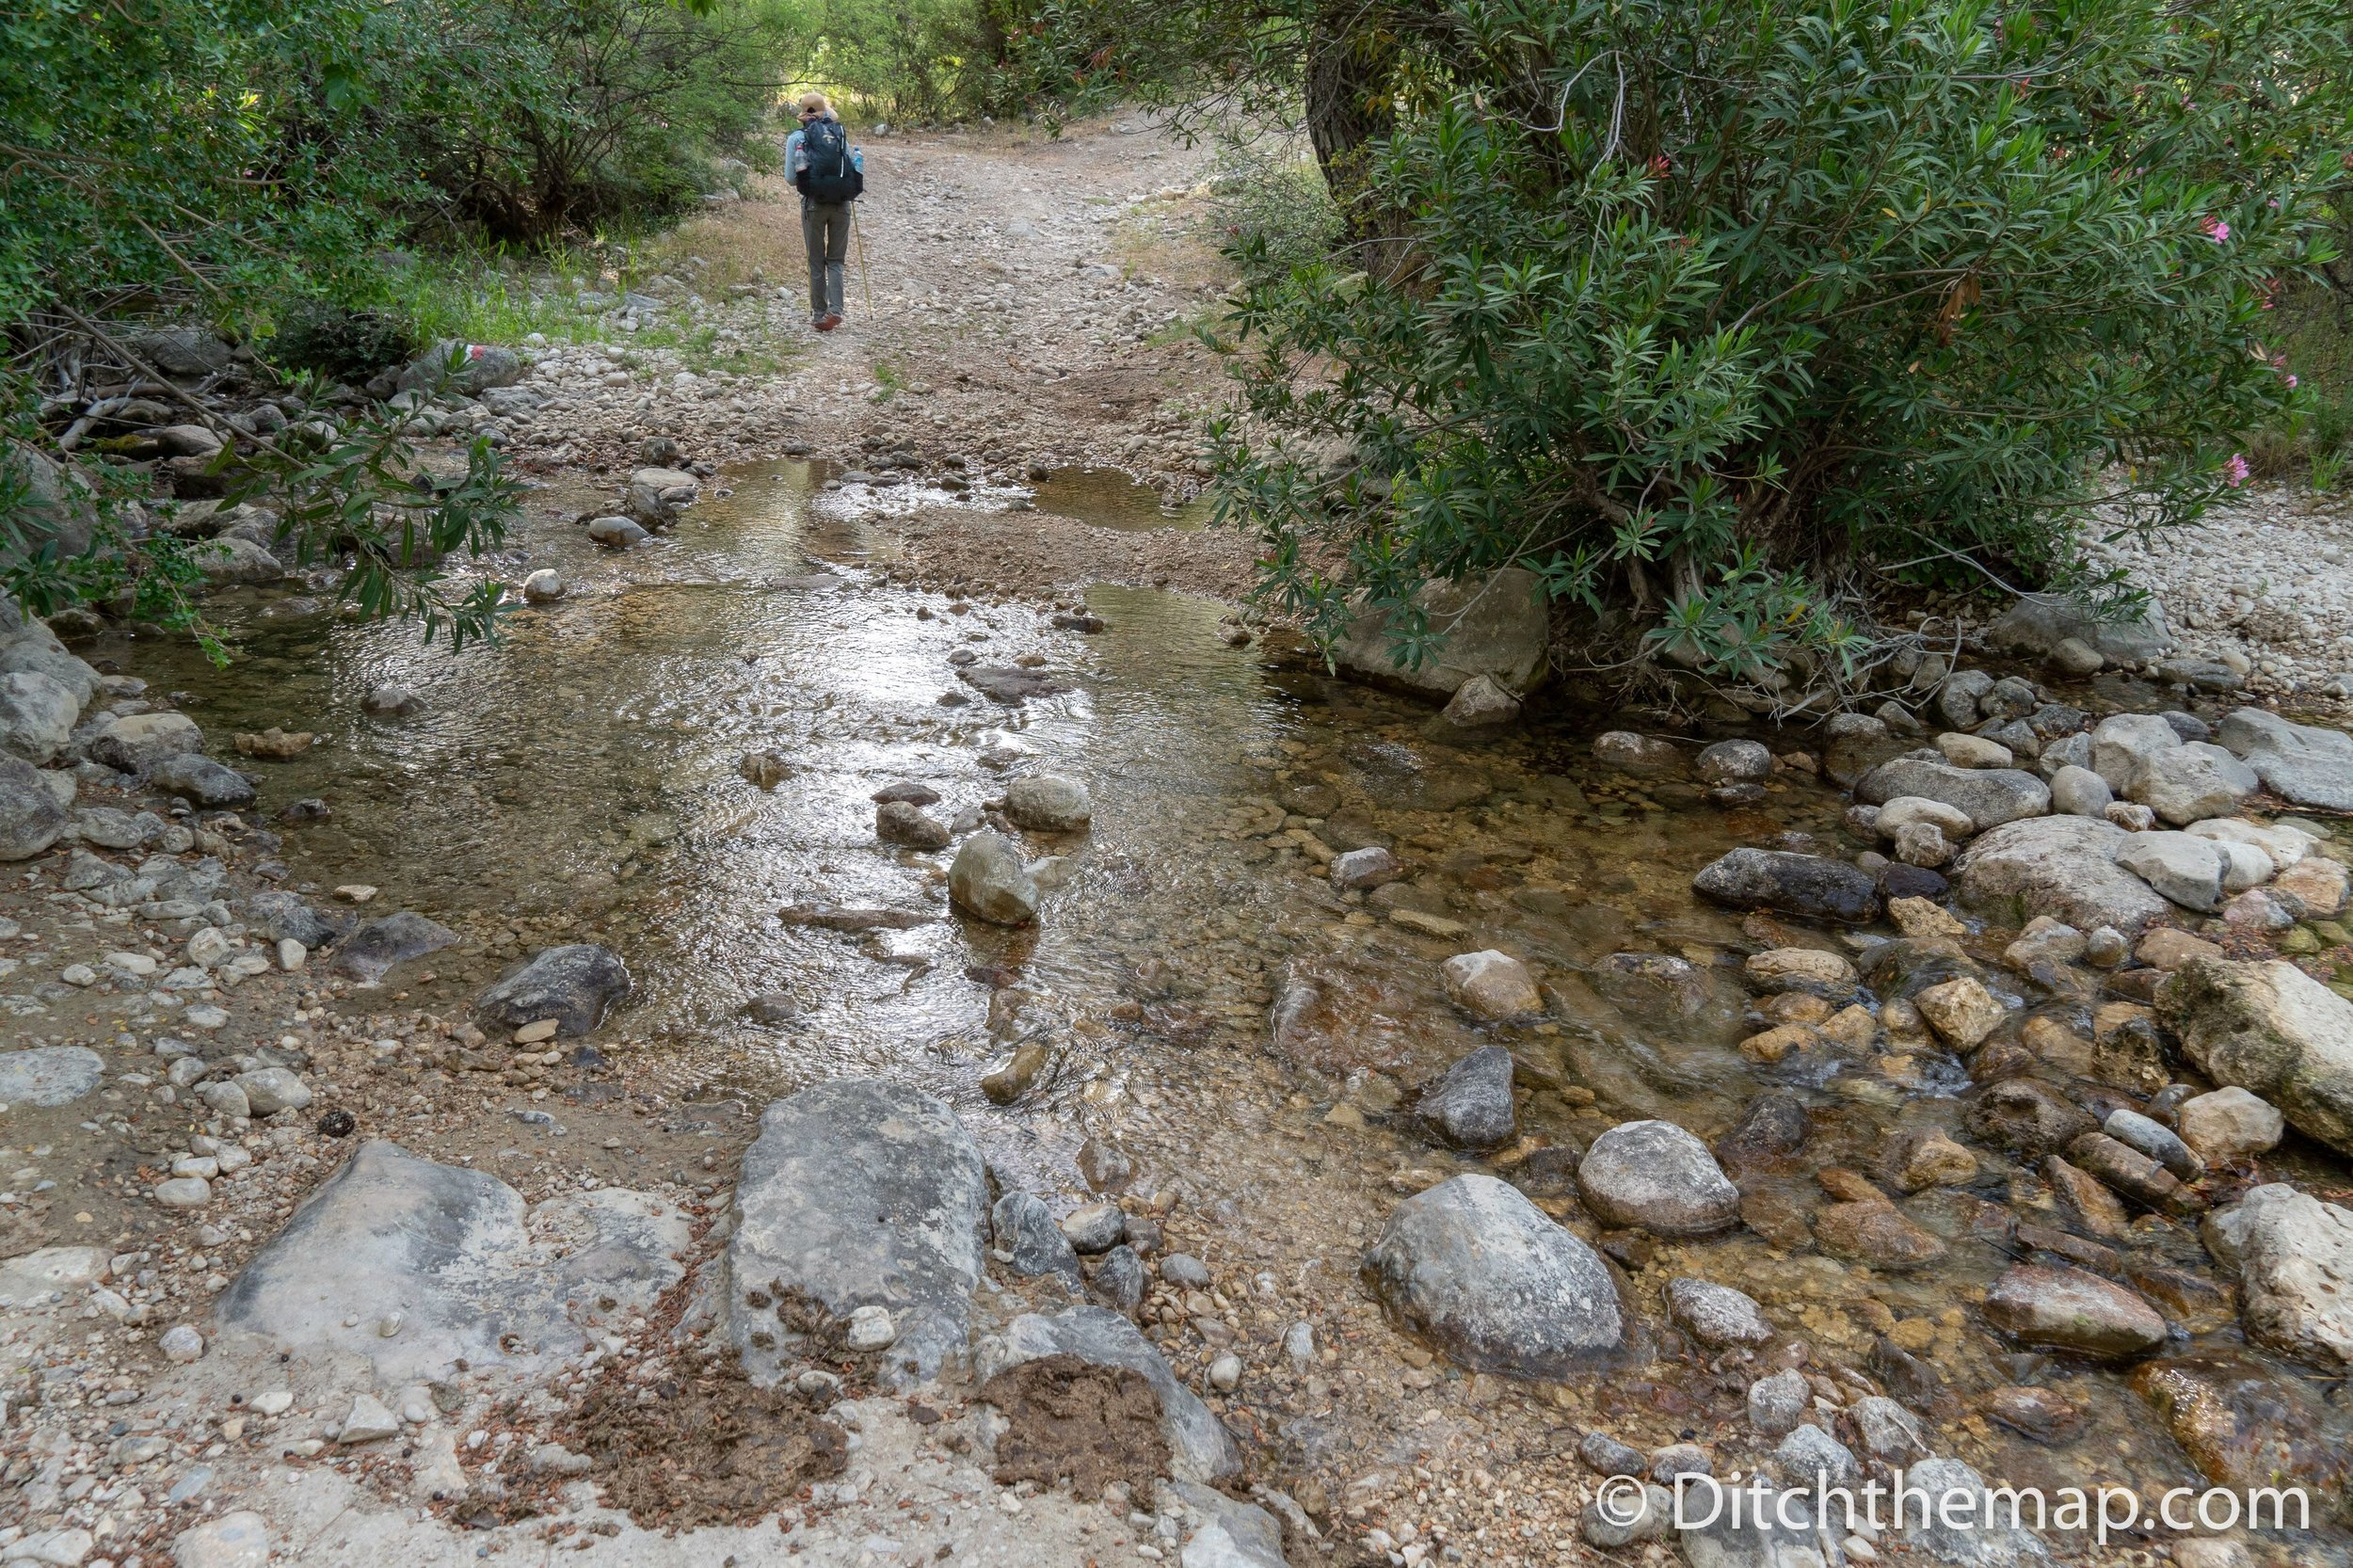 Crossing a stream near Hacıoğlan Deresi on the Lycian Way